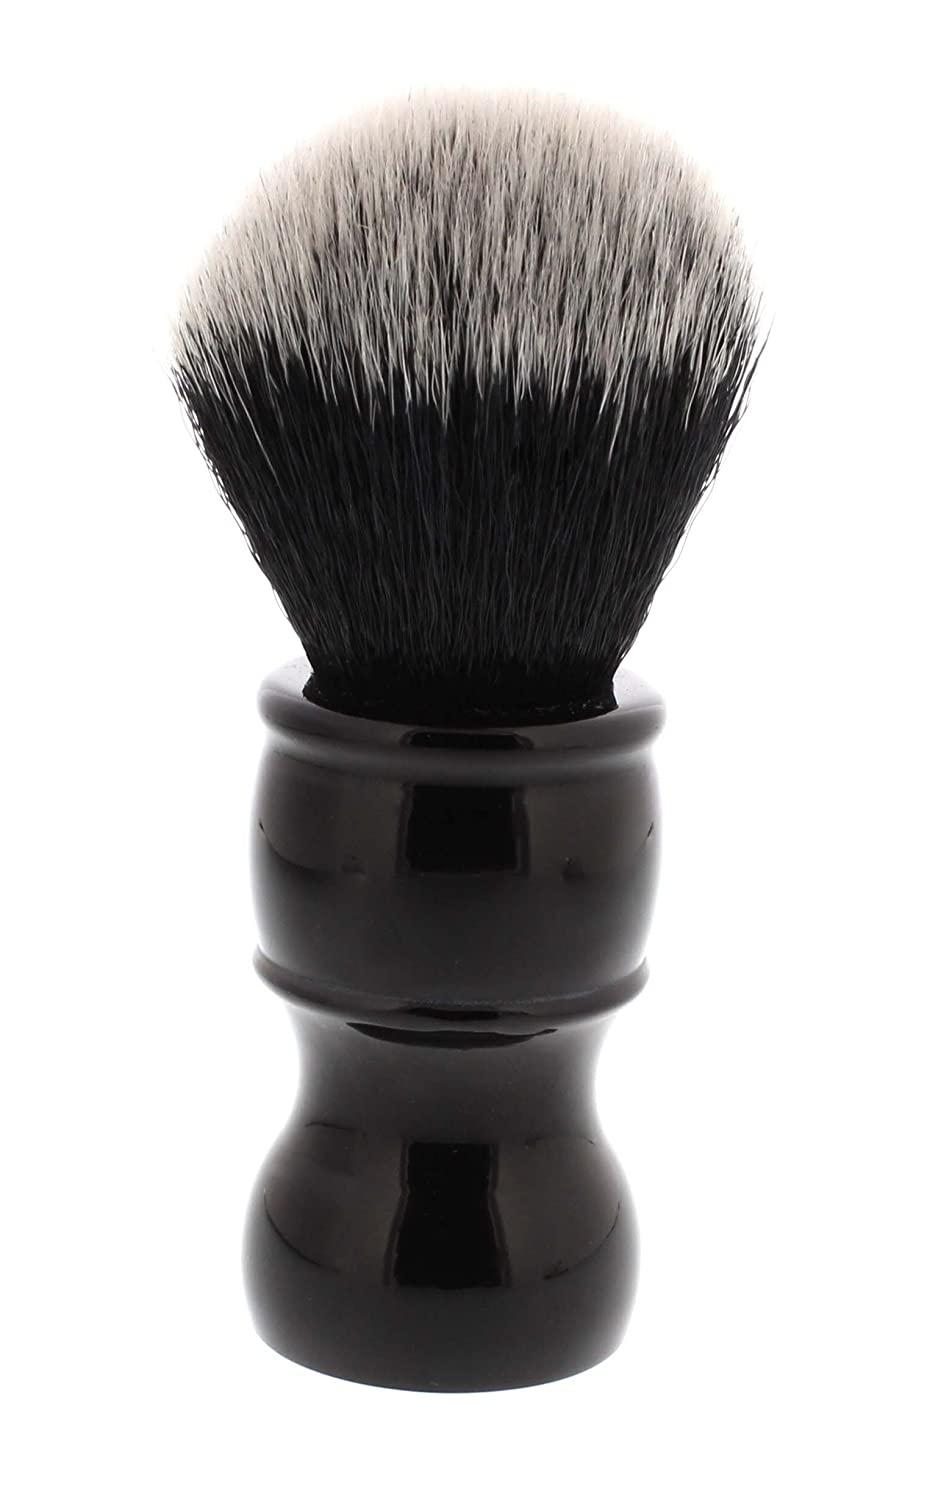 WCS Beacon Black Large-scale sale Brush Soldering Synthetic Shaving